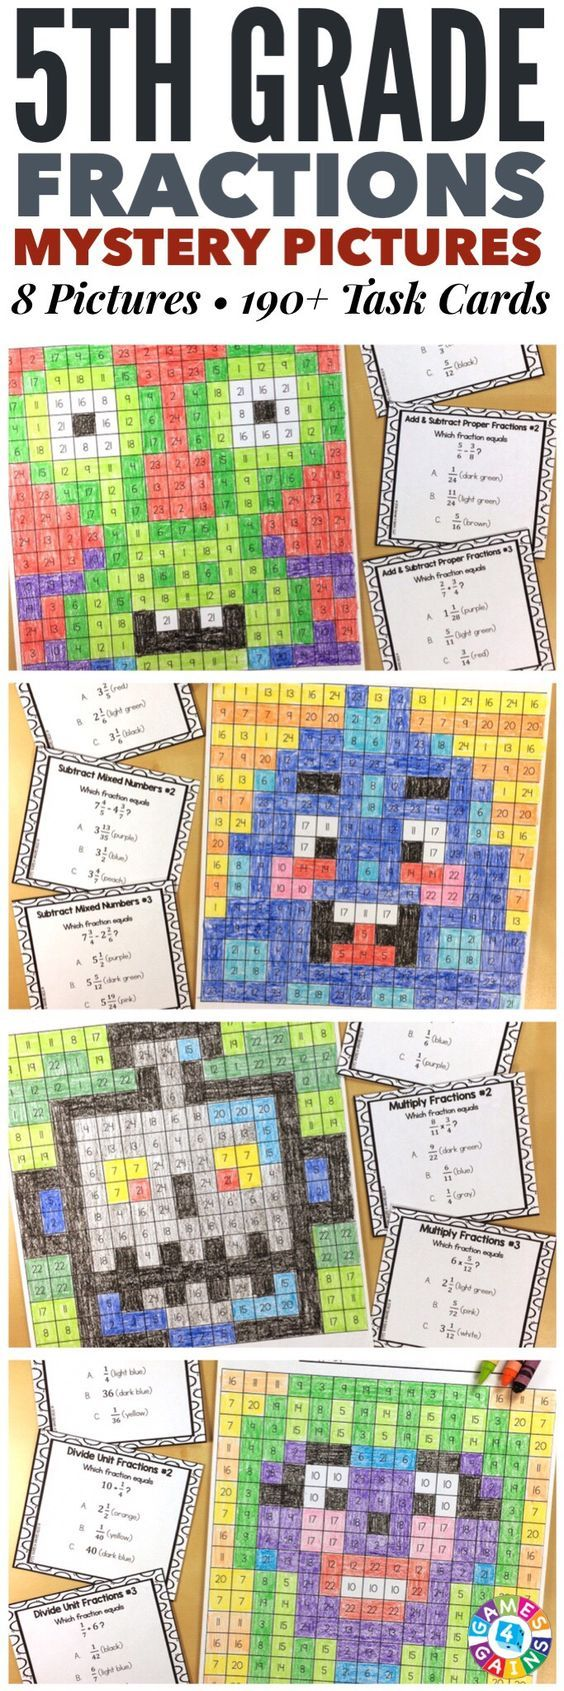 """I LOVE these mystery pictures for reinforcing concepts!"" These 5th Grade Fractions Mystery Pictures are perfect for practicing key 5th grade Common Core fractions standards. This set includes 8 different pictures and over 190 task cards covering simplifying proper fractions and mixed numbers, adding and subtracting proper fractions with unlike denominators, adding mixed numbers, subtracting mixed numbers, multiplying fractions, and dividing fractions!"